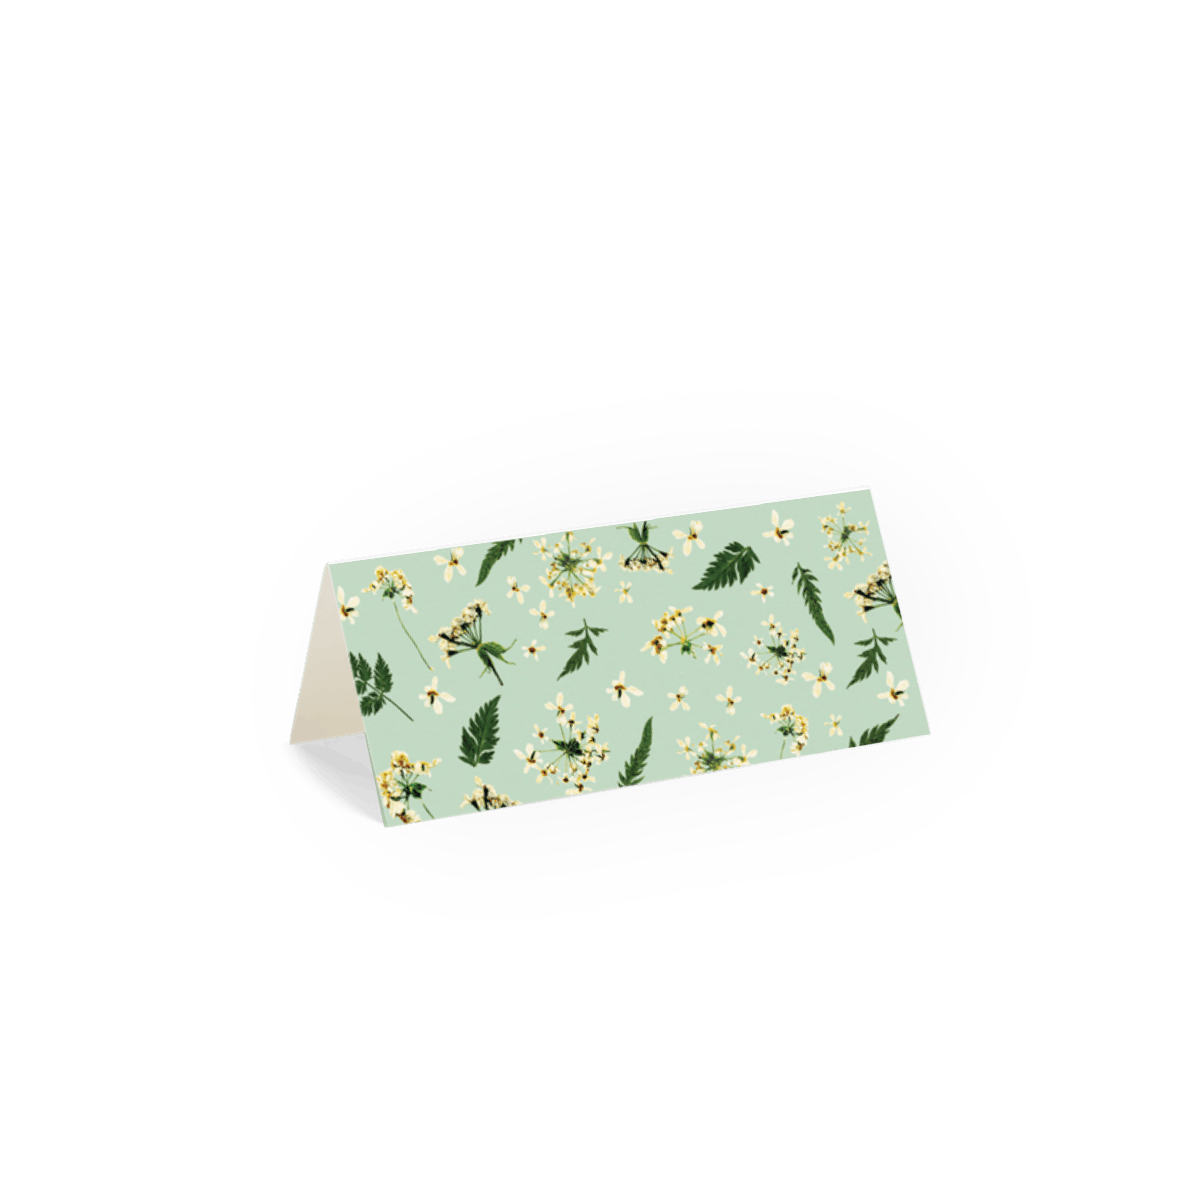 Https%3a%2f%2fwww.papier.com%2fproduct image%2f24298%2f15%2fcow parsley 6081 back 1498125752.png?ixlib=rb 1.1